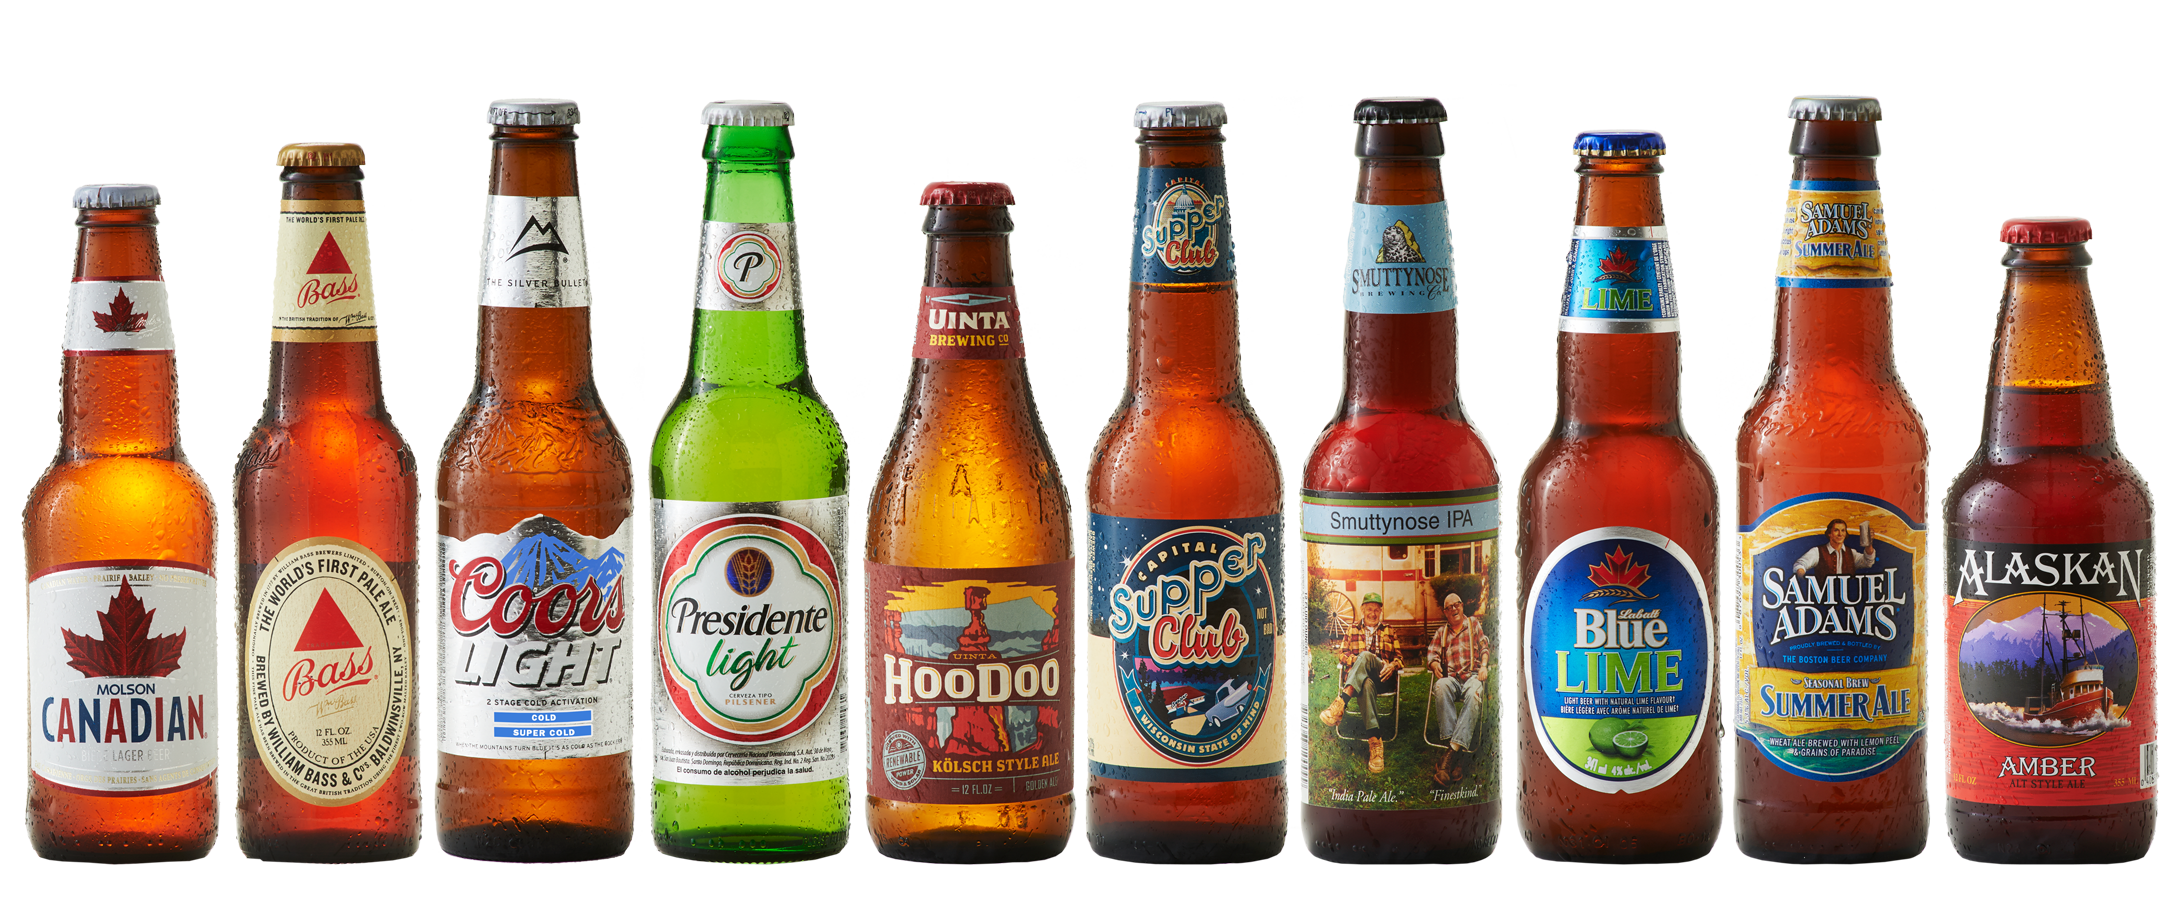 Beer Bottle PNG HD-PlusPNG.com-2180 - Beer Bottle PNG HD